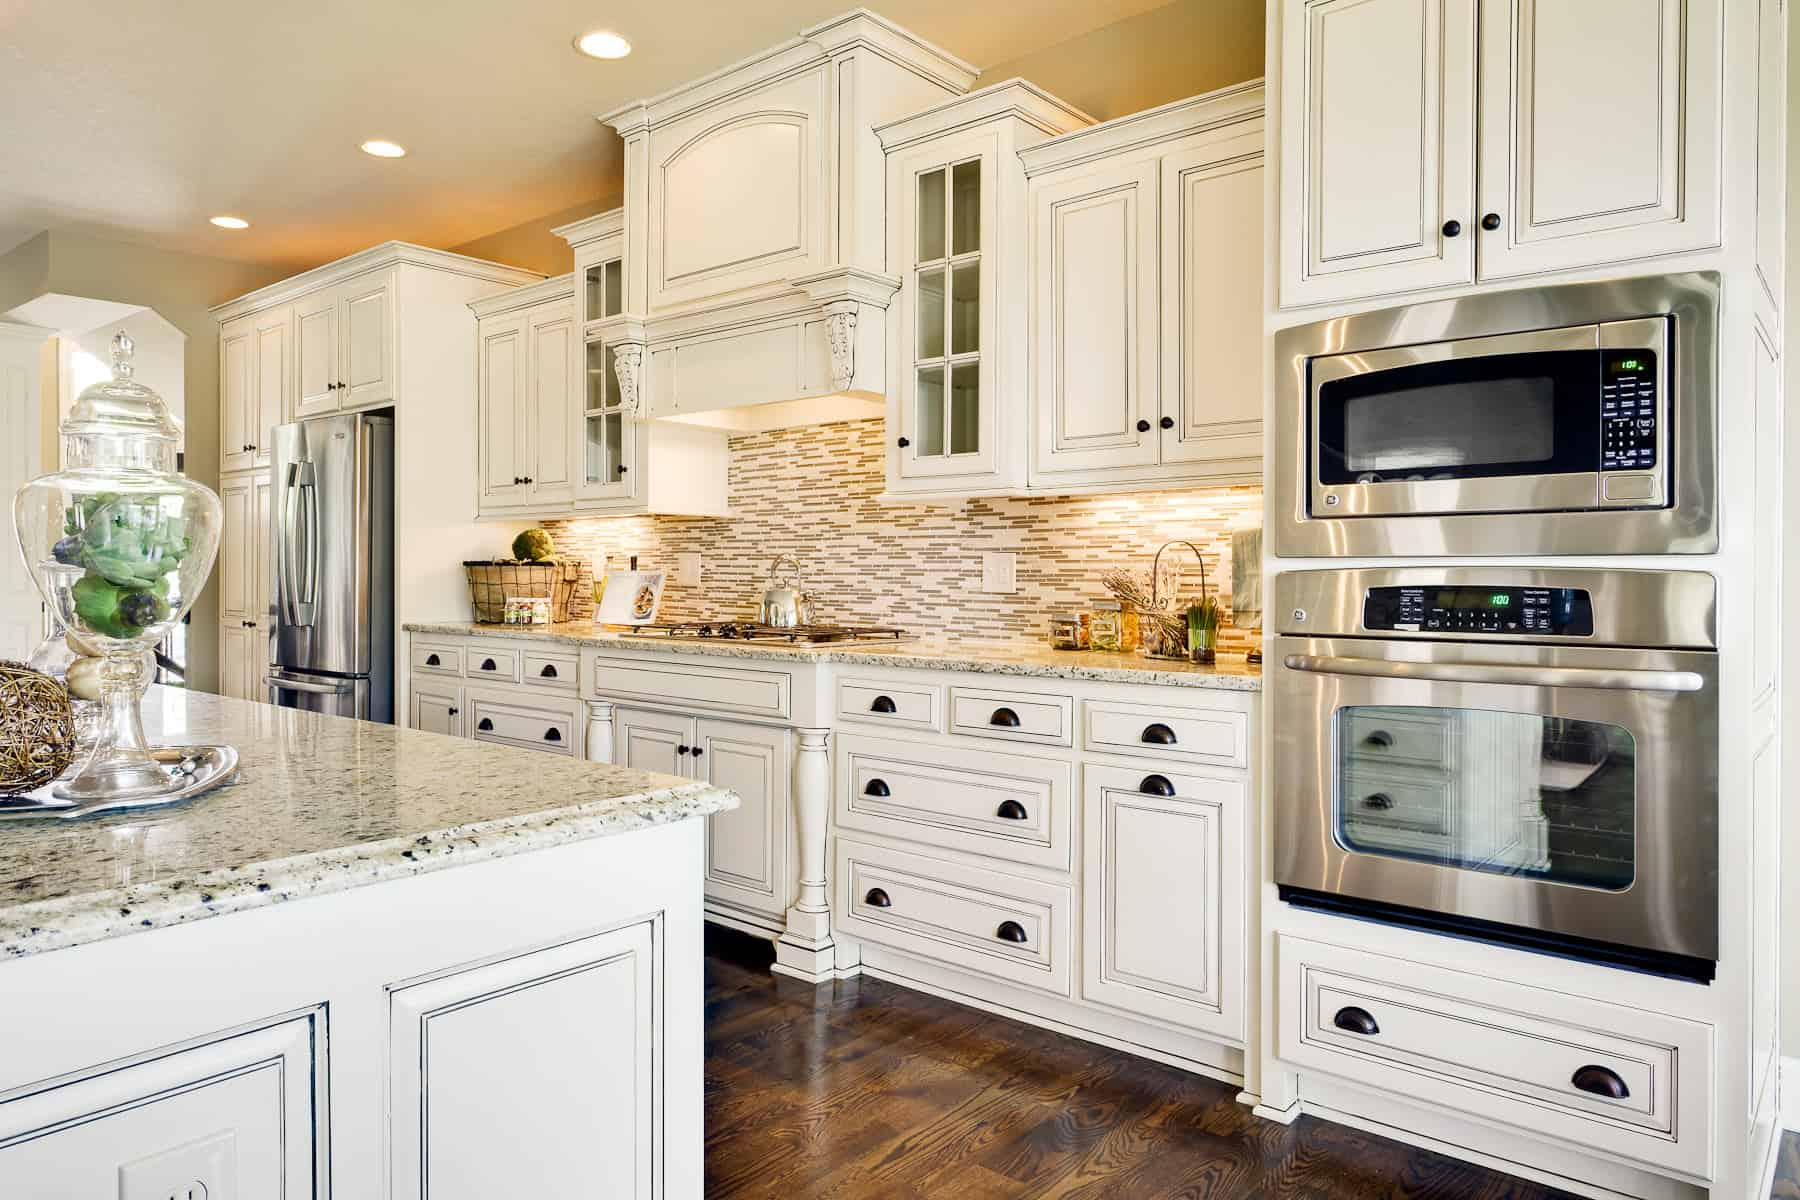 How much do Granite Countertops Cost